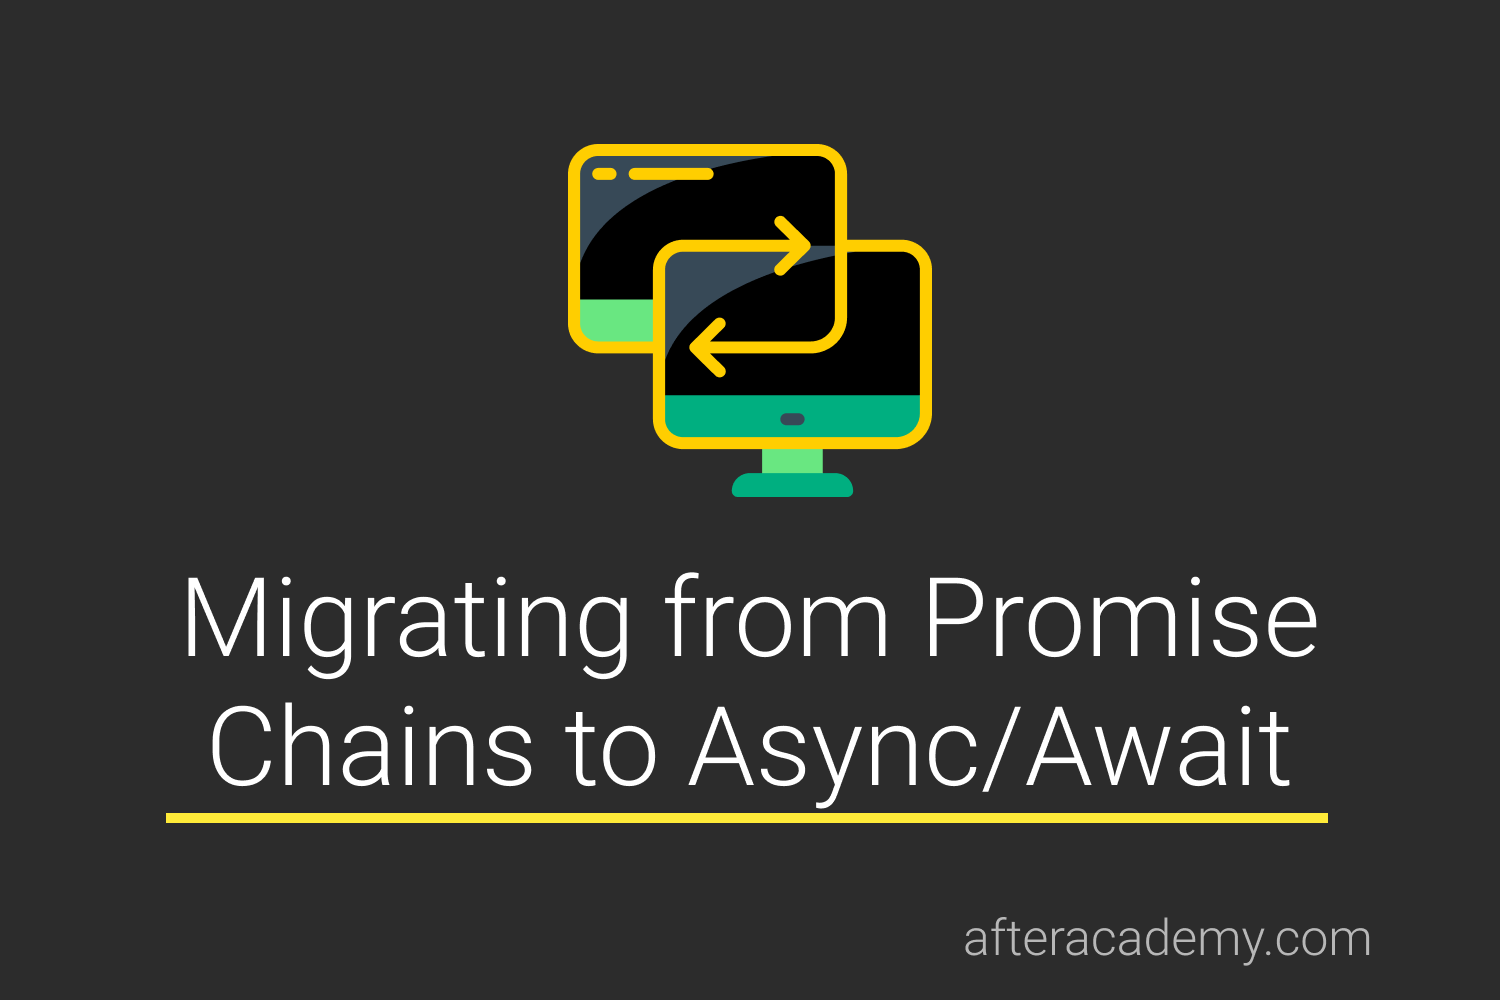 Migrating from Promise chains to Async/Await